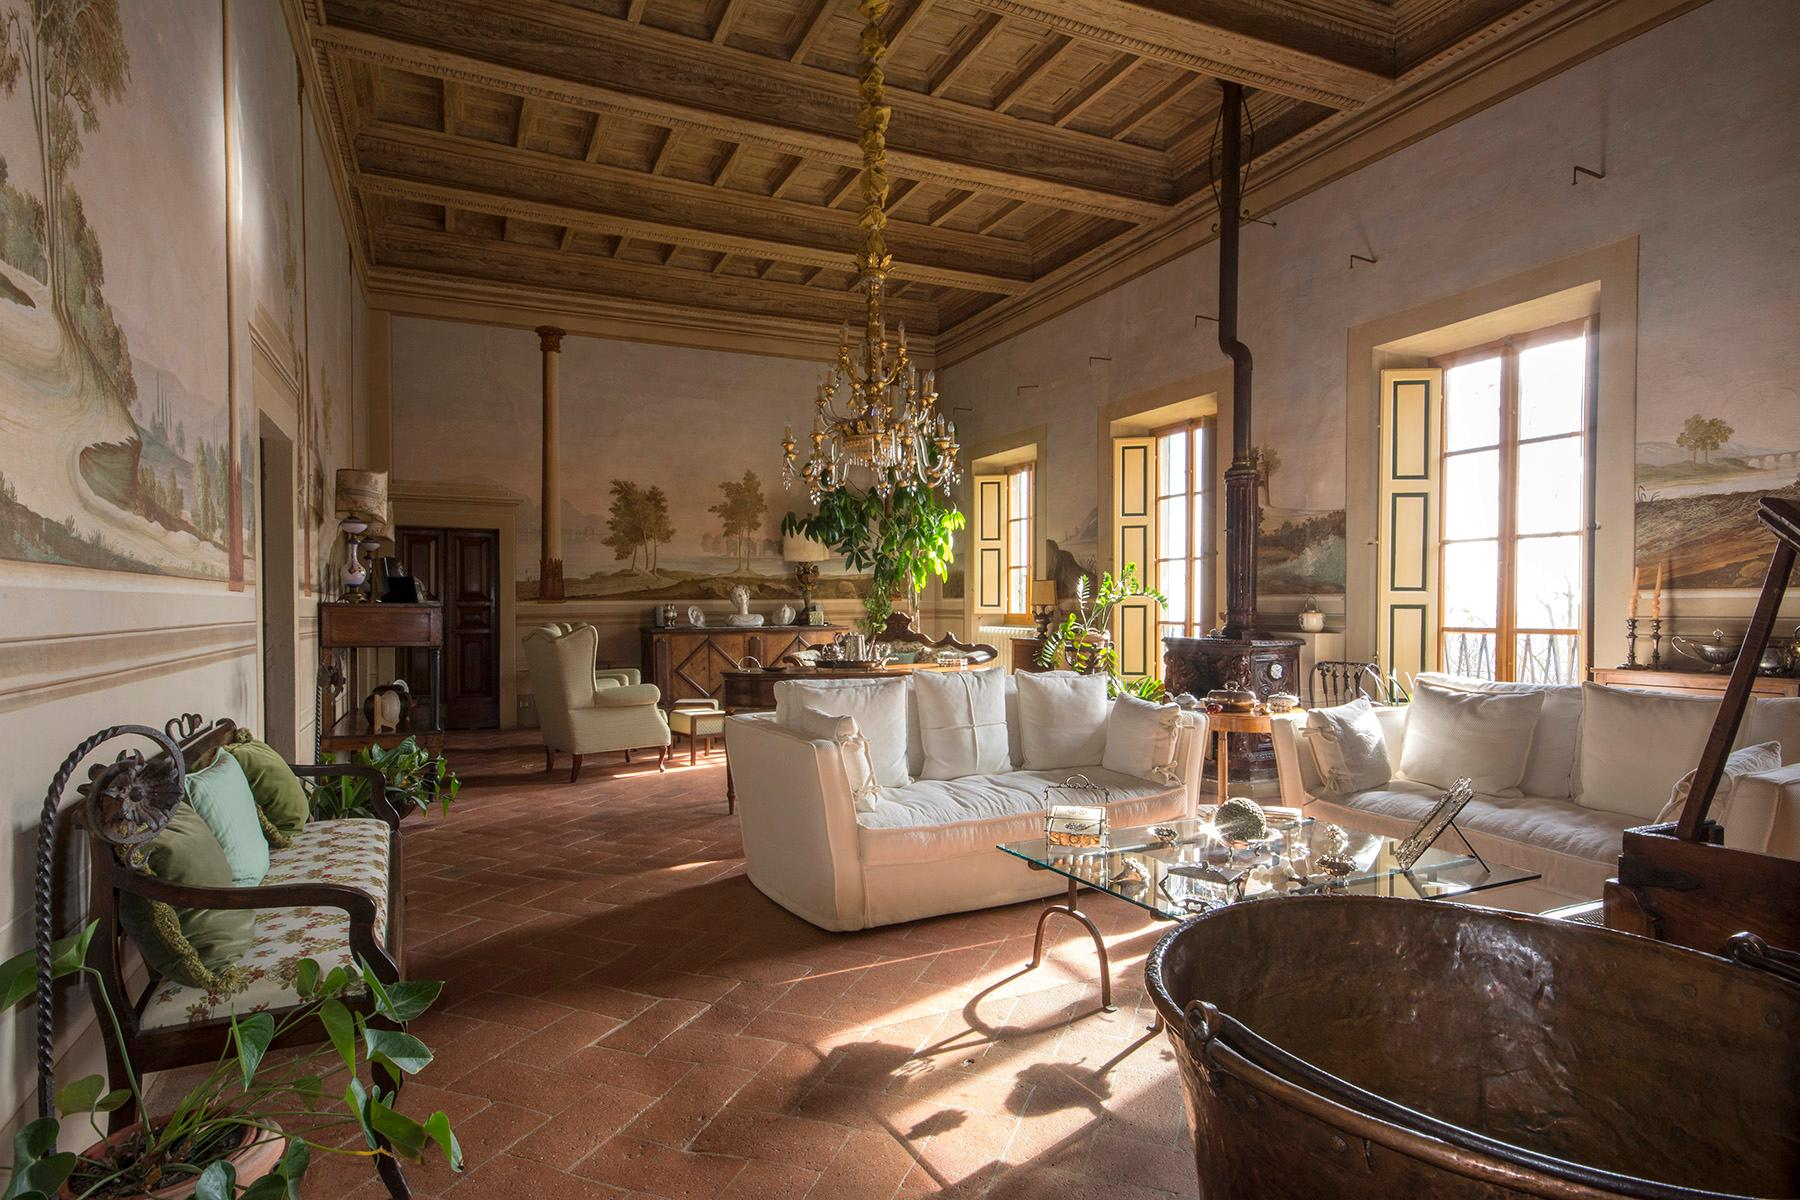 Stunning apartment in the tuscan countryside - 1